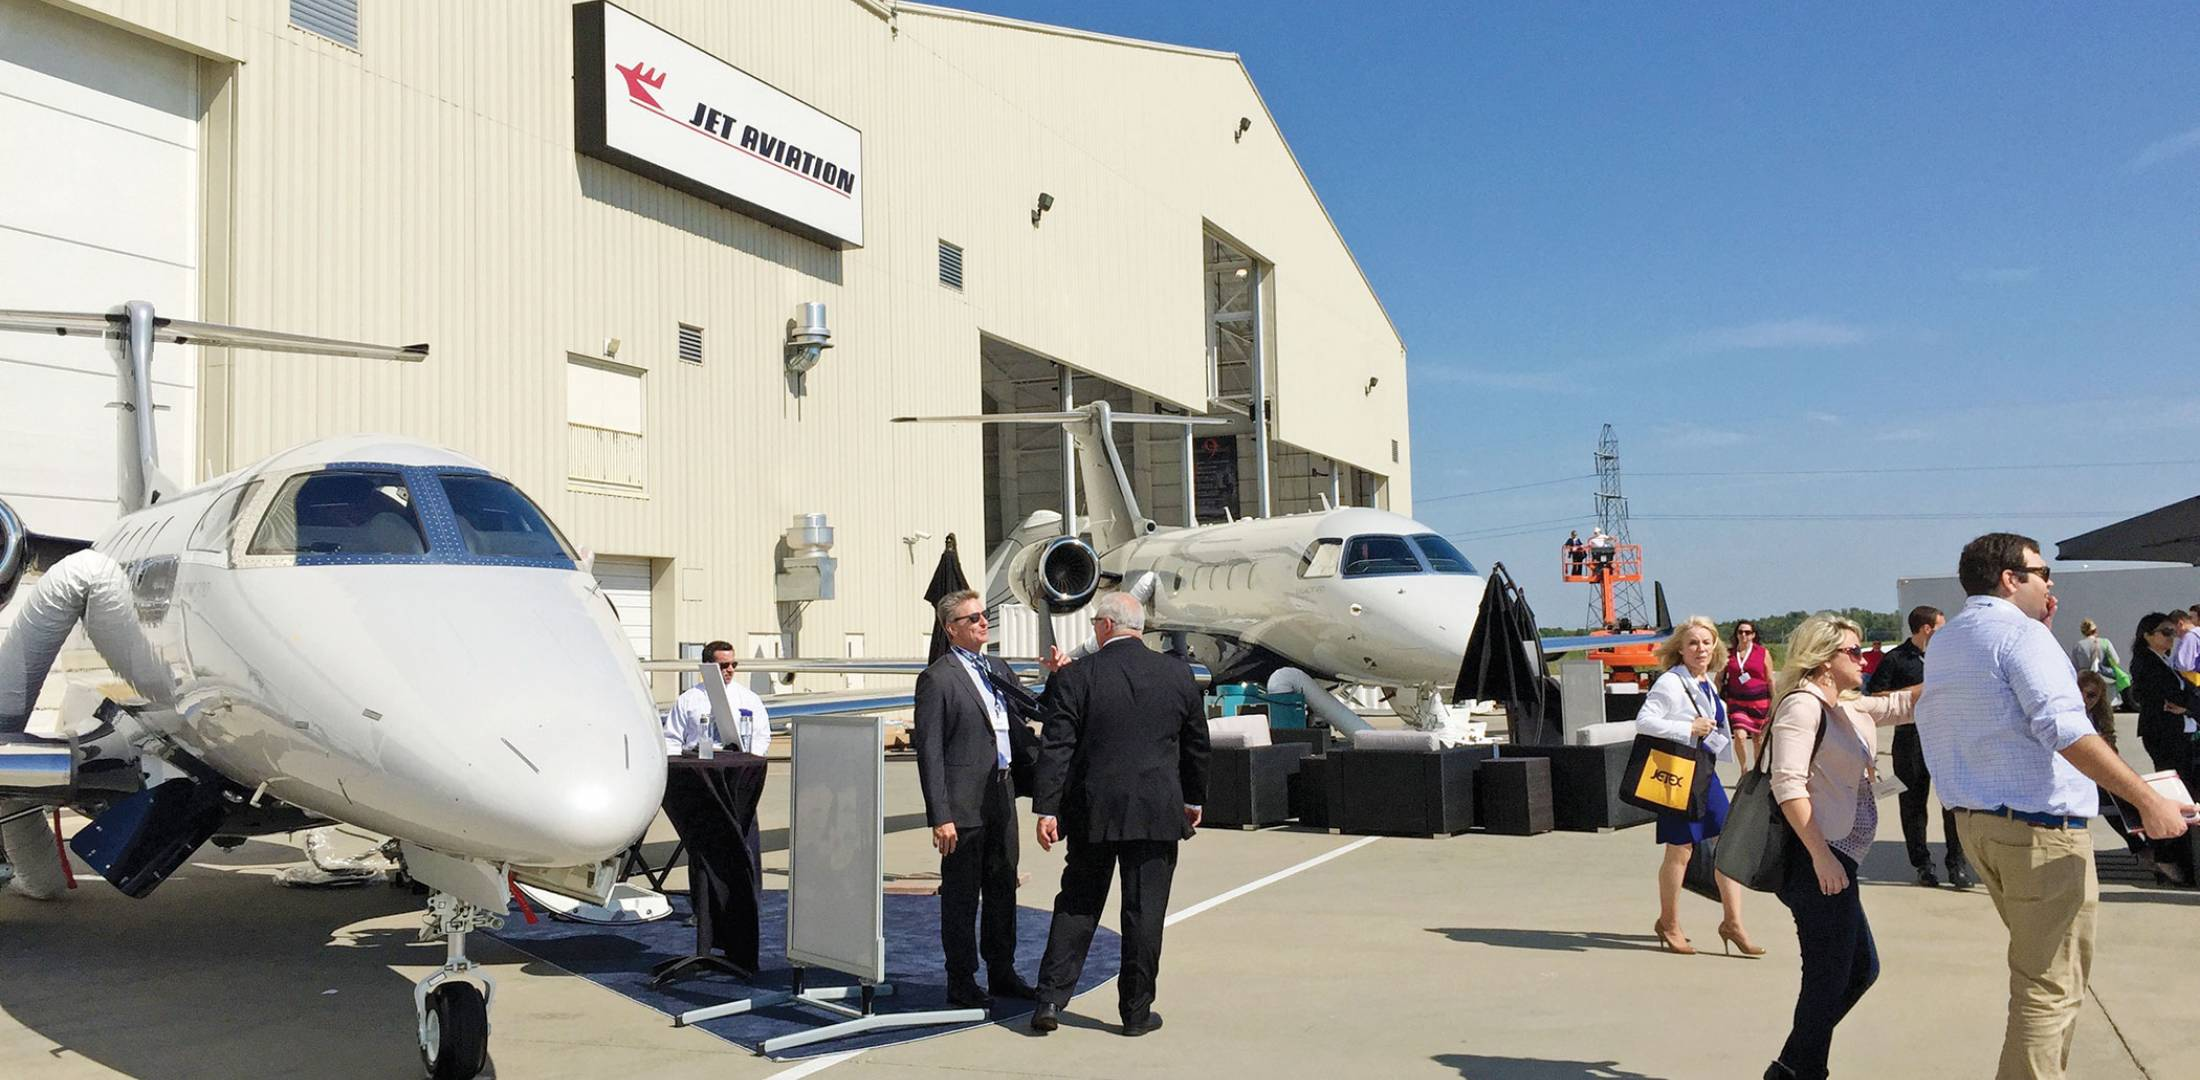 Growth Continues At Jet Aviation St Louis Business News Aerospace Wire Harness Ties Hosted Its First Nbaa Regional Forum In September Held